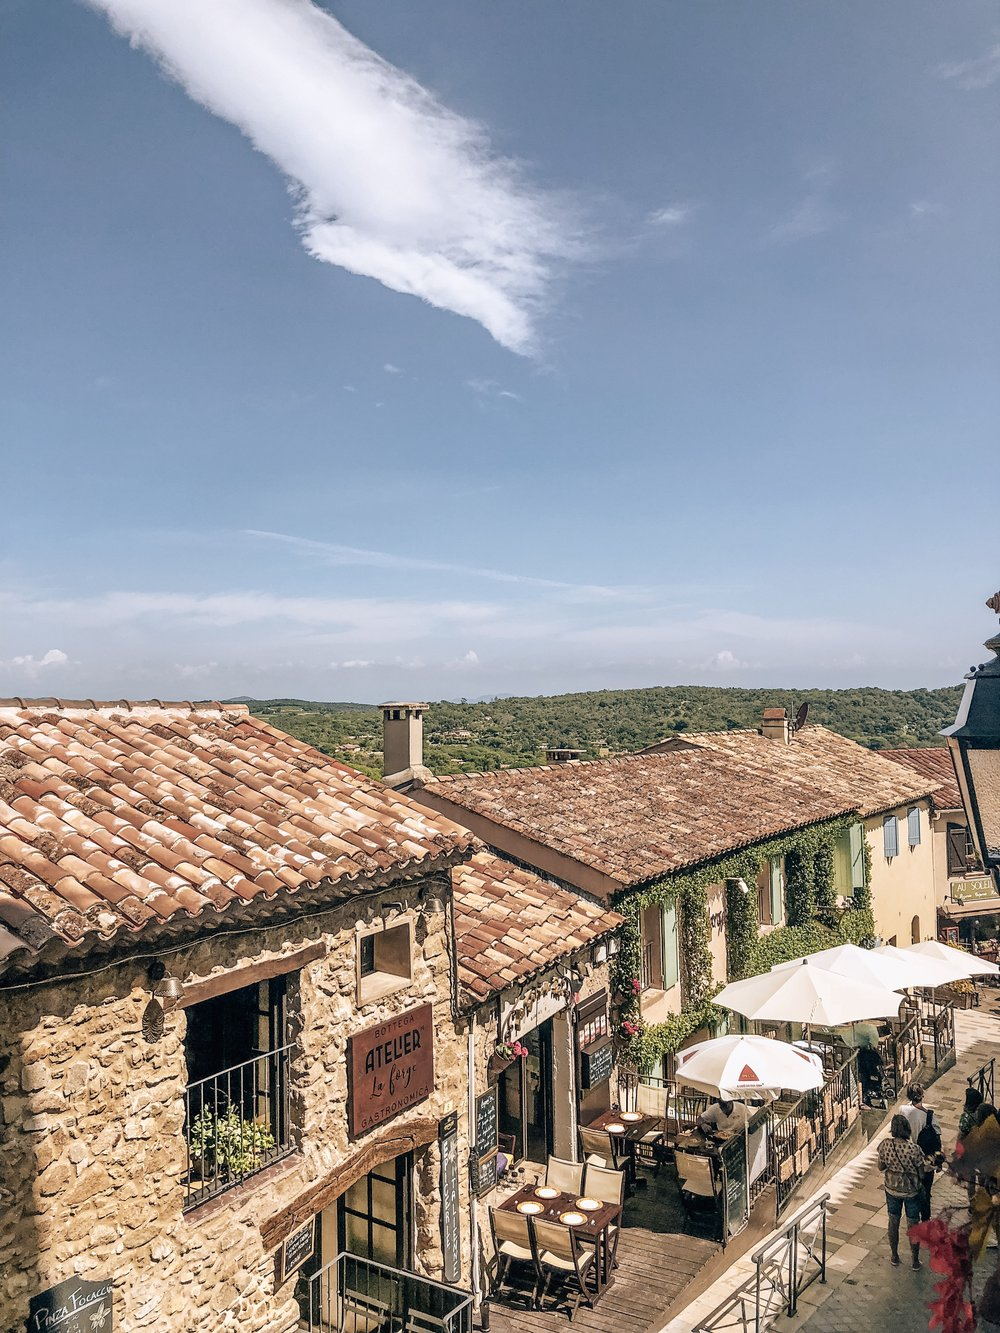 Historical village in French Riviera